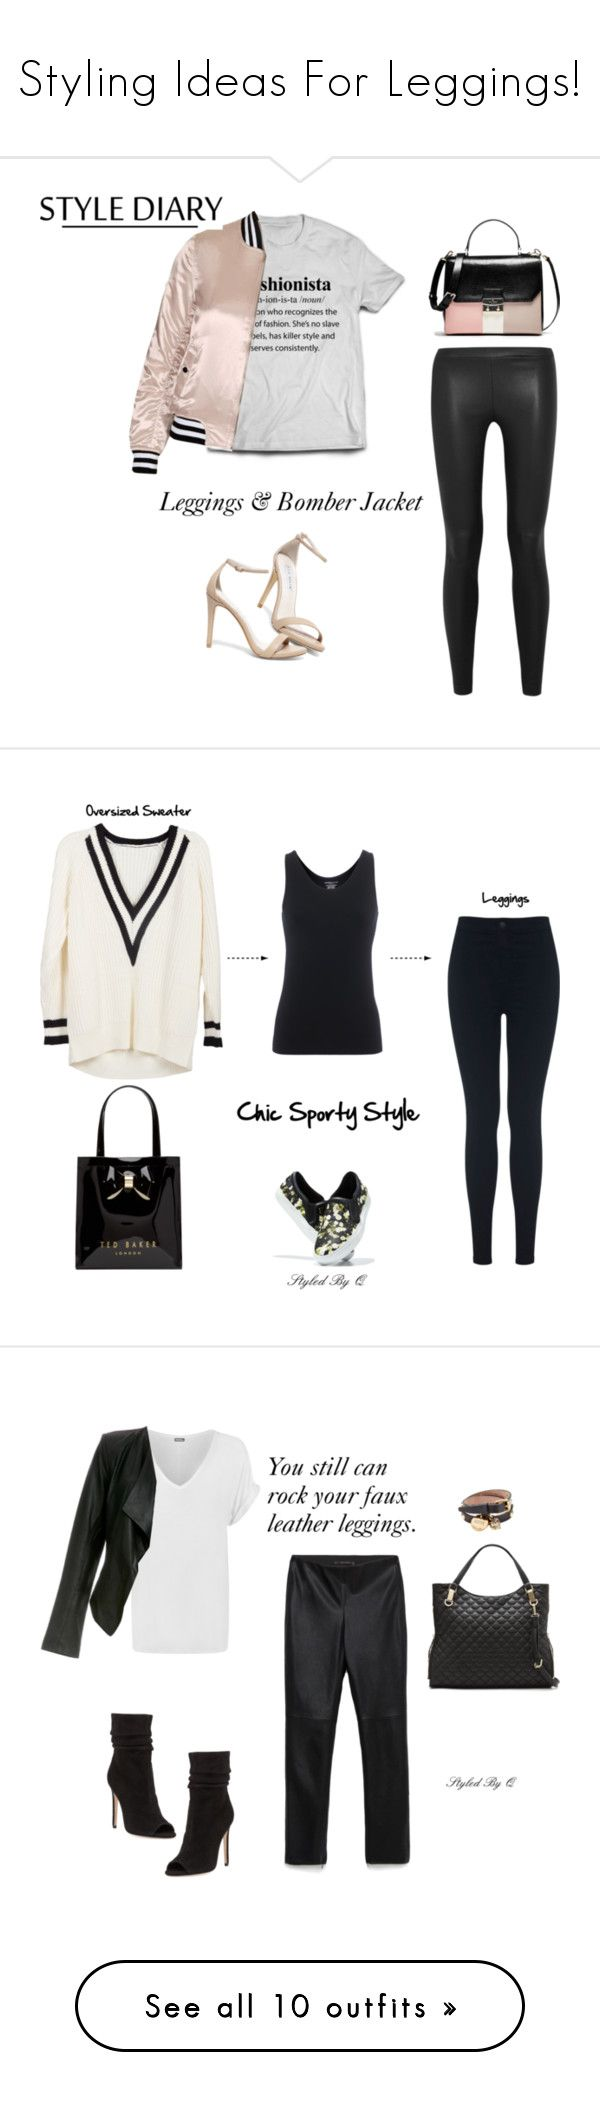 """Styling Ideas For Leggings!"" by quintan ❤ liked on Polyvore featuring Vince, Topshop, Steve Madden, Givenchy, Majestic Filatures, Miss Selfridge, Ted Baker, Zara, WearAll and Halston Heritage"